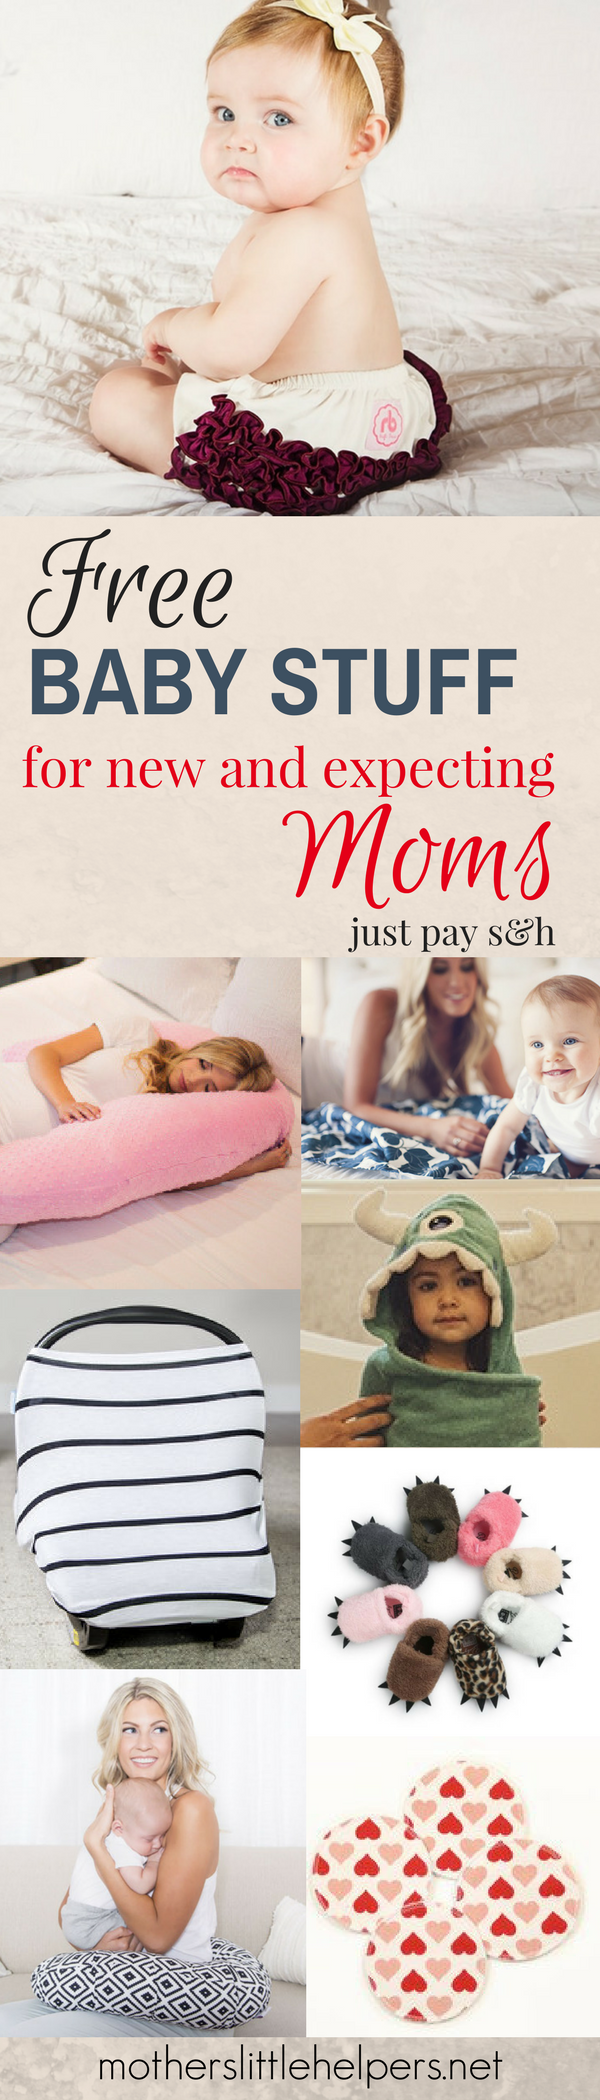 HOW TO GET FREE BABY STUFF – click here to find out how to get you and your baby some really awesome newborn baby stuff. You can get everything from free baby shoes to free hooded towels and even a really high-quality free car seat canopy! Grab your FREE STUFF FOR NEW MOMS now! motherslittlehelpers.net #freebabystuff #babygear #babyfreebies